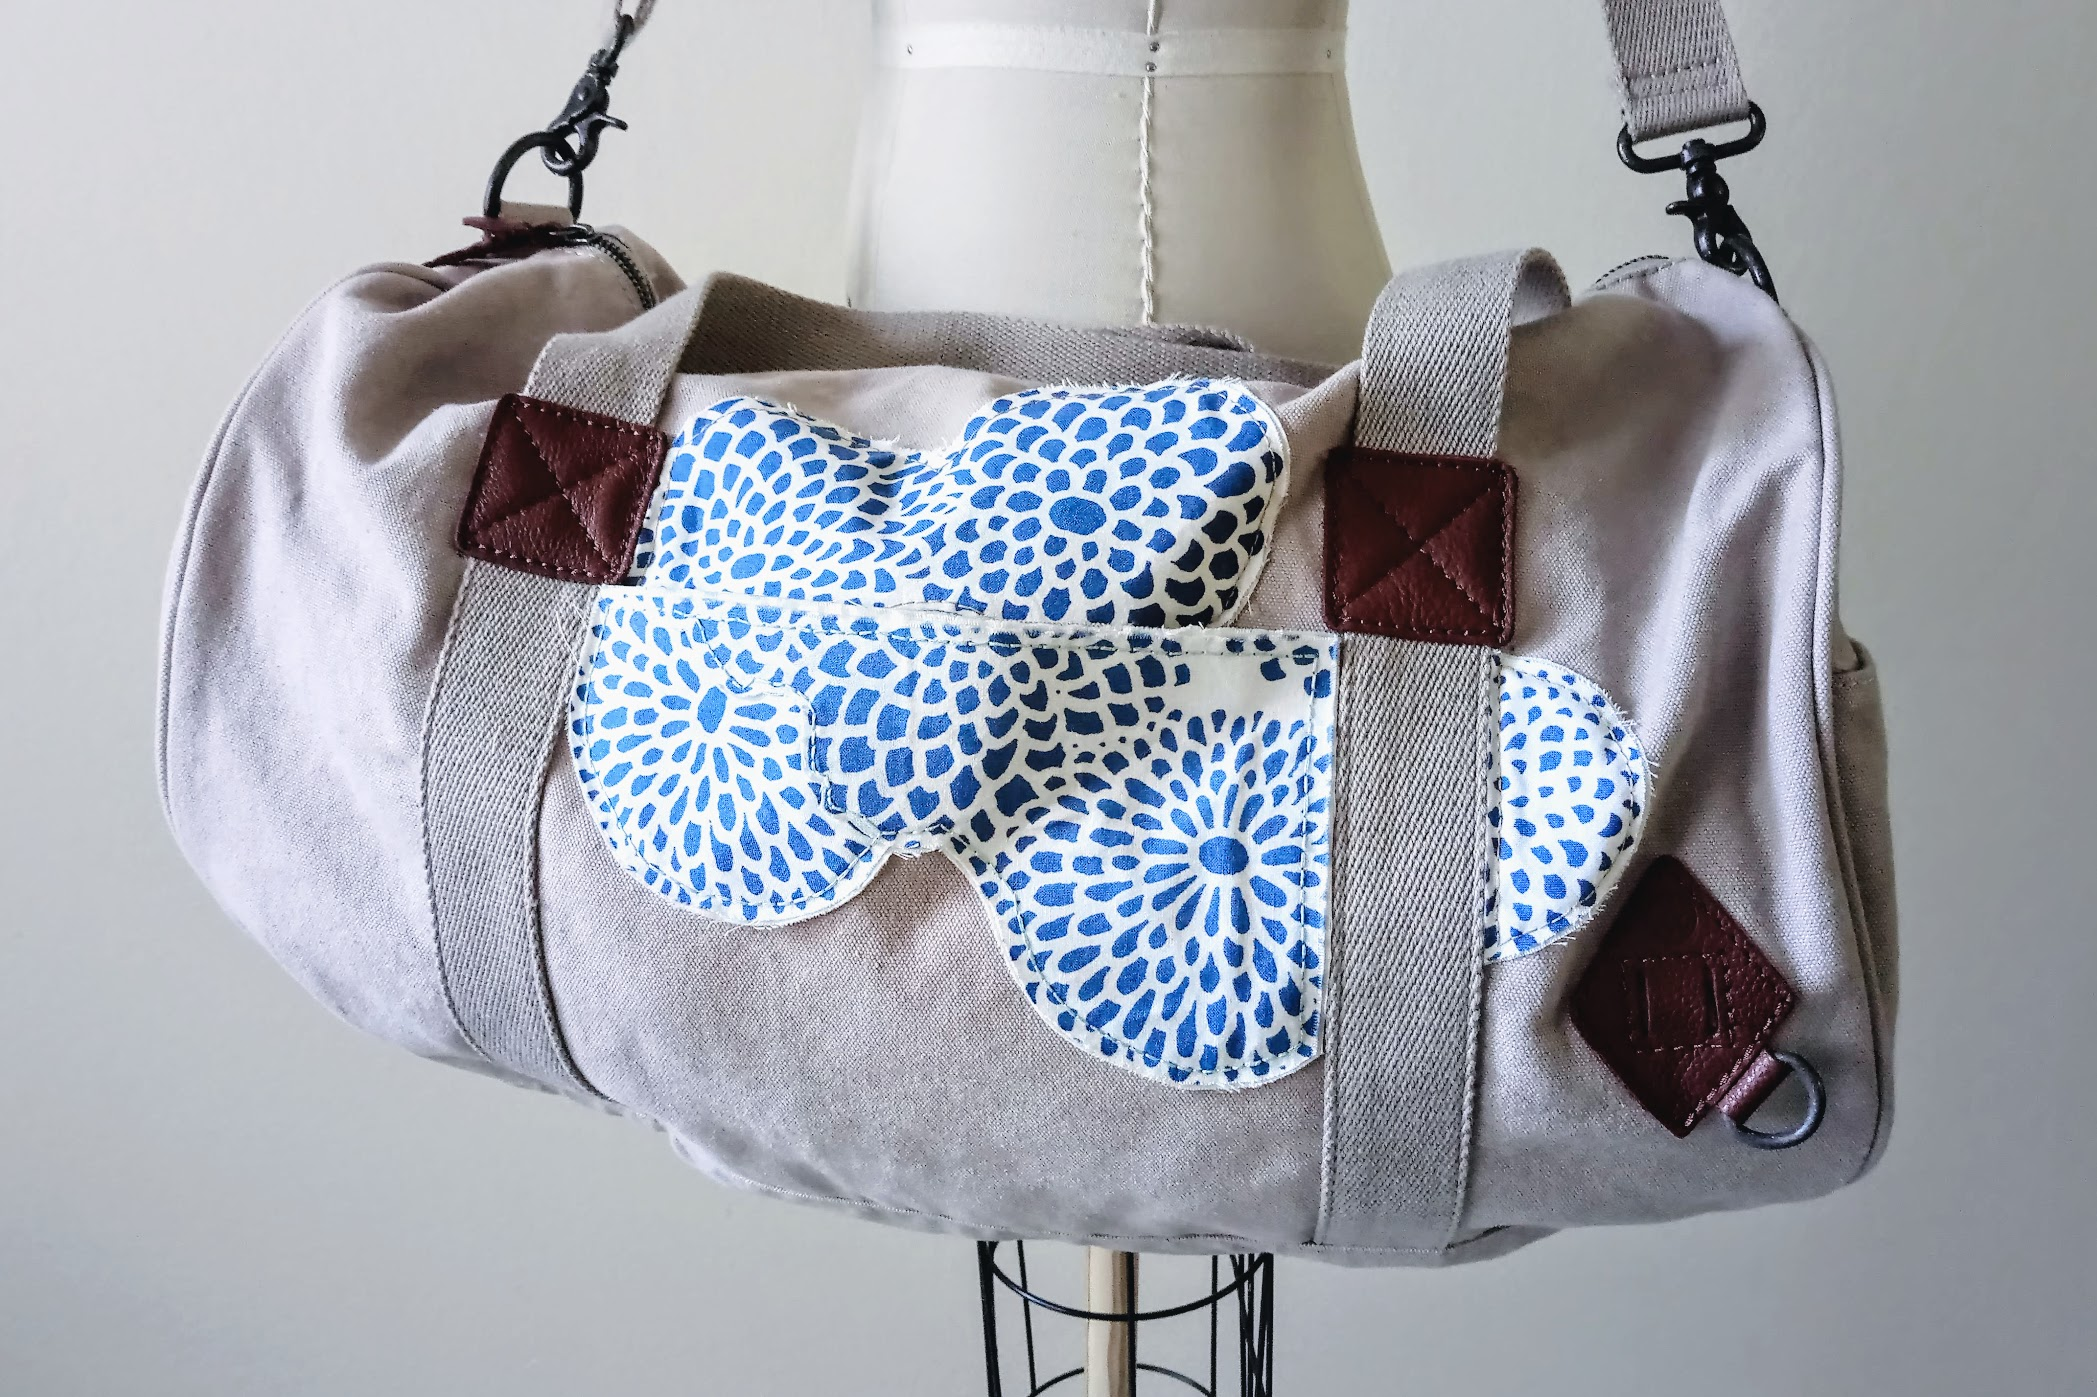 Result: Duffel Bag Personalization with Fabric Appliqués - DIY Fashion Accessories